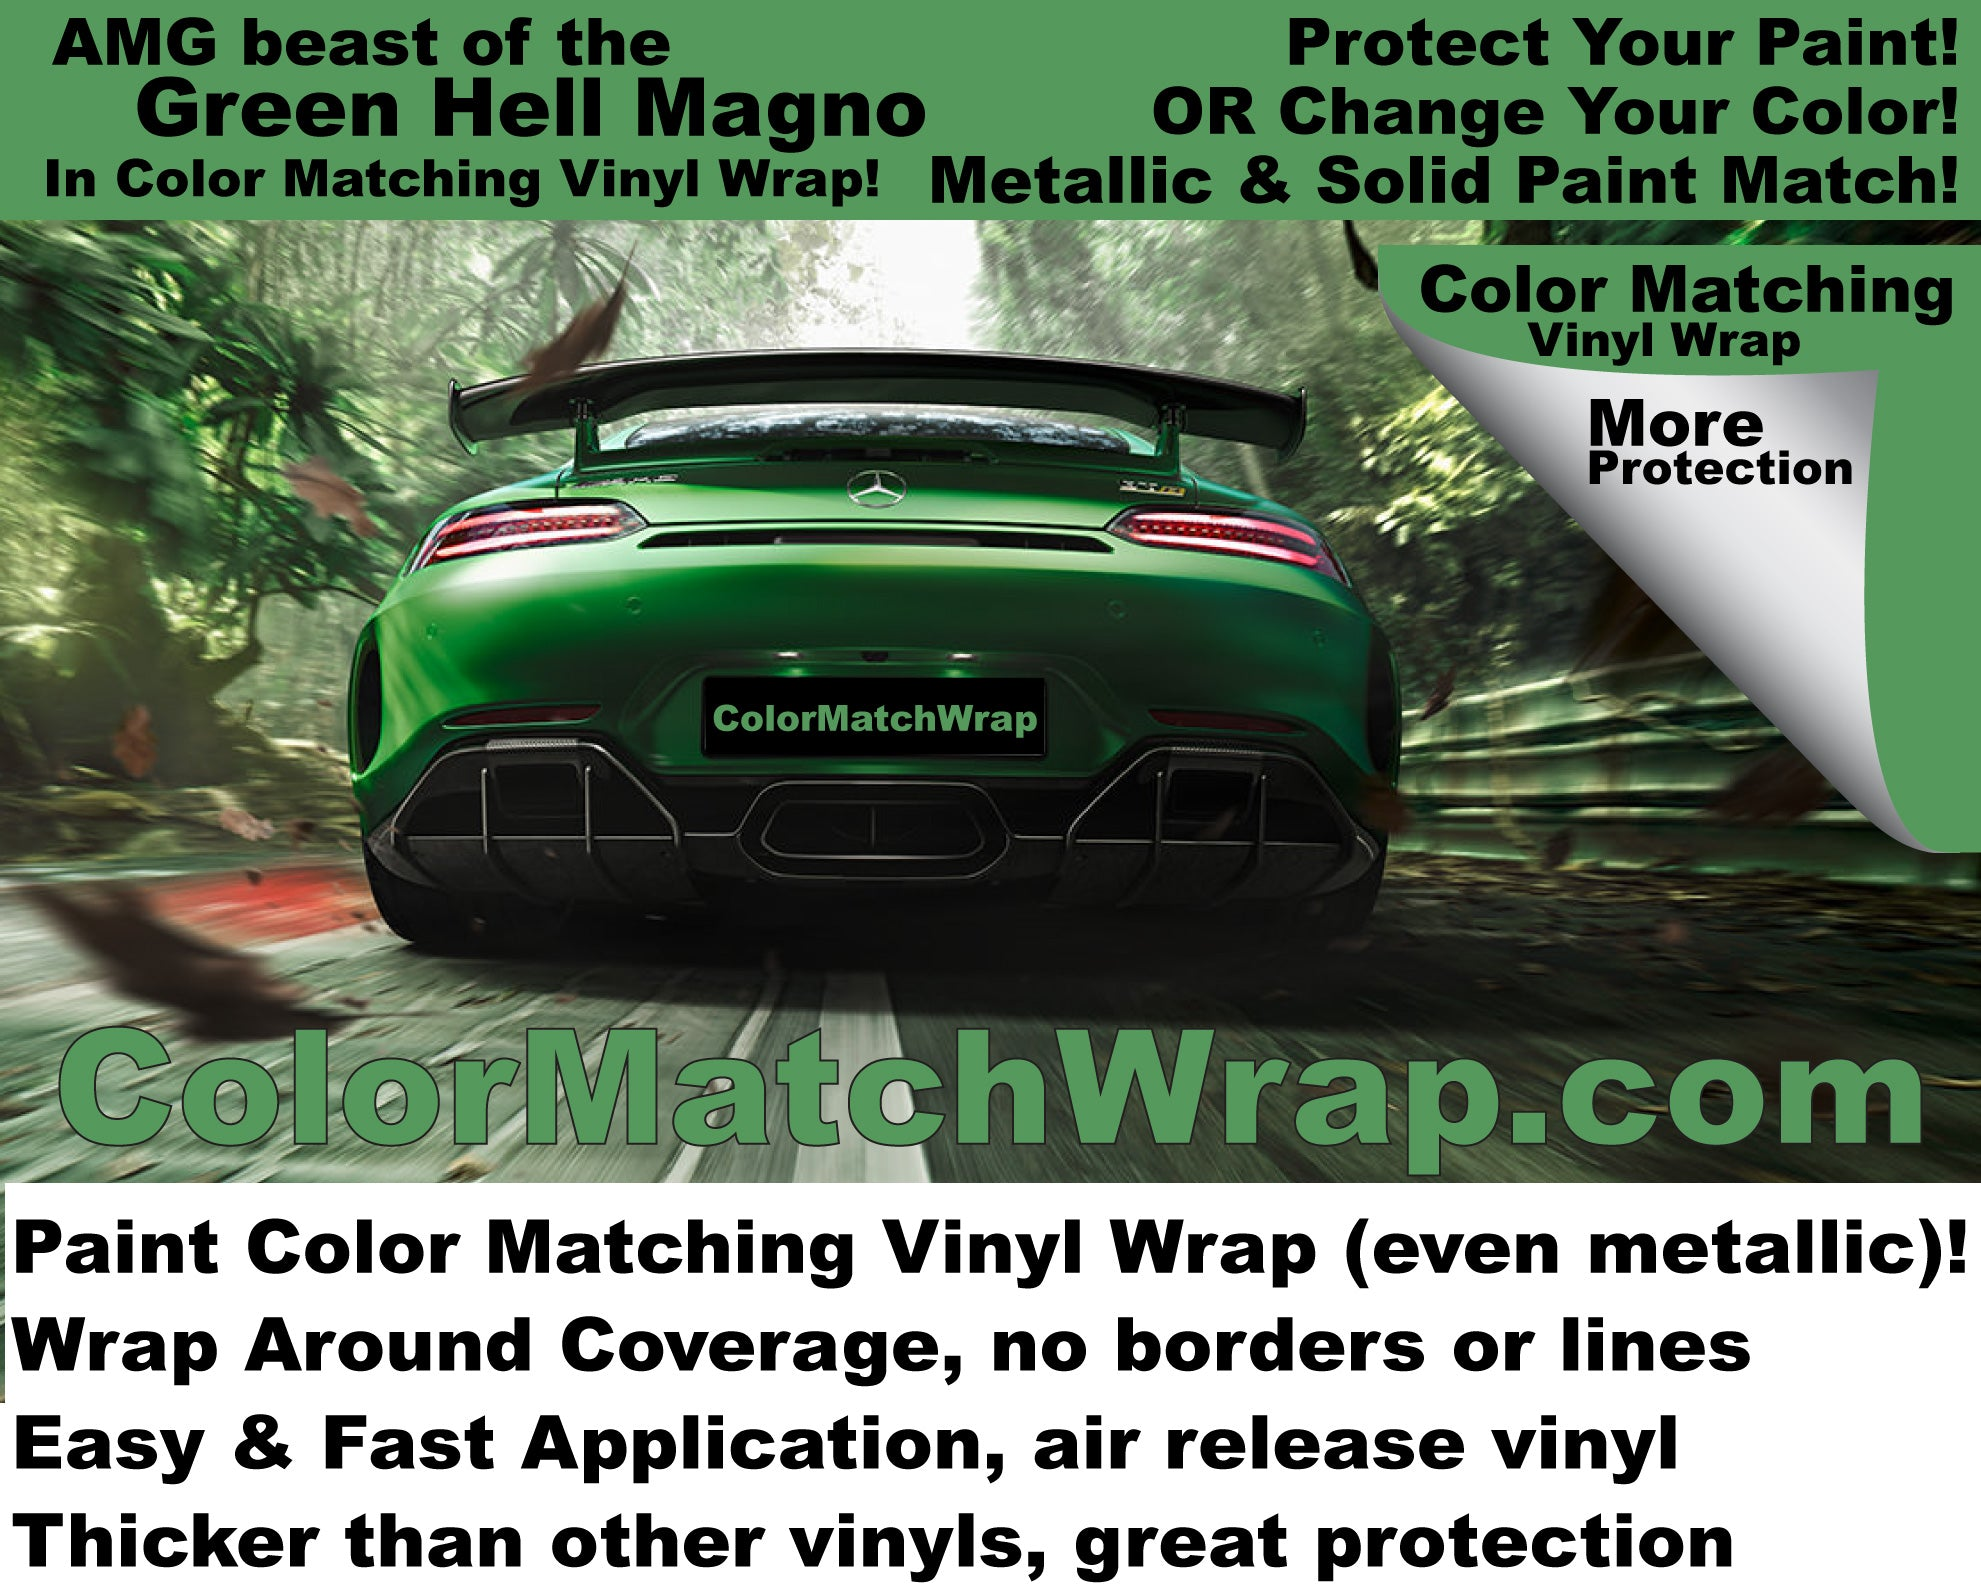 where to buy amg gt r beast of the green hell vinyl wrap